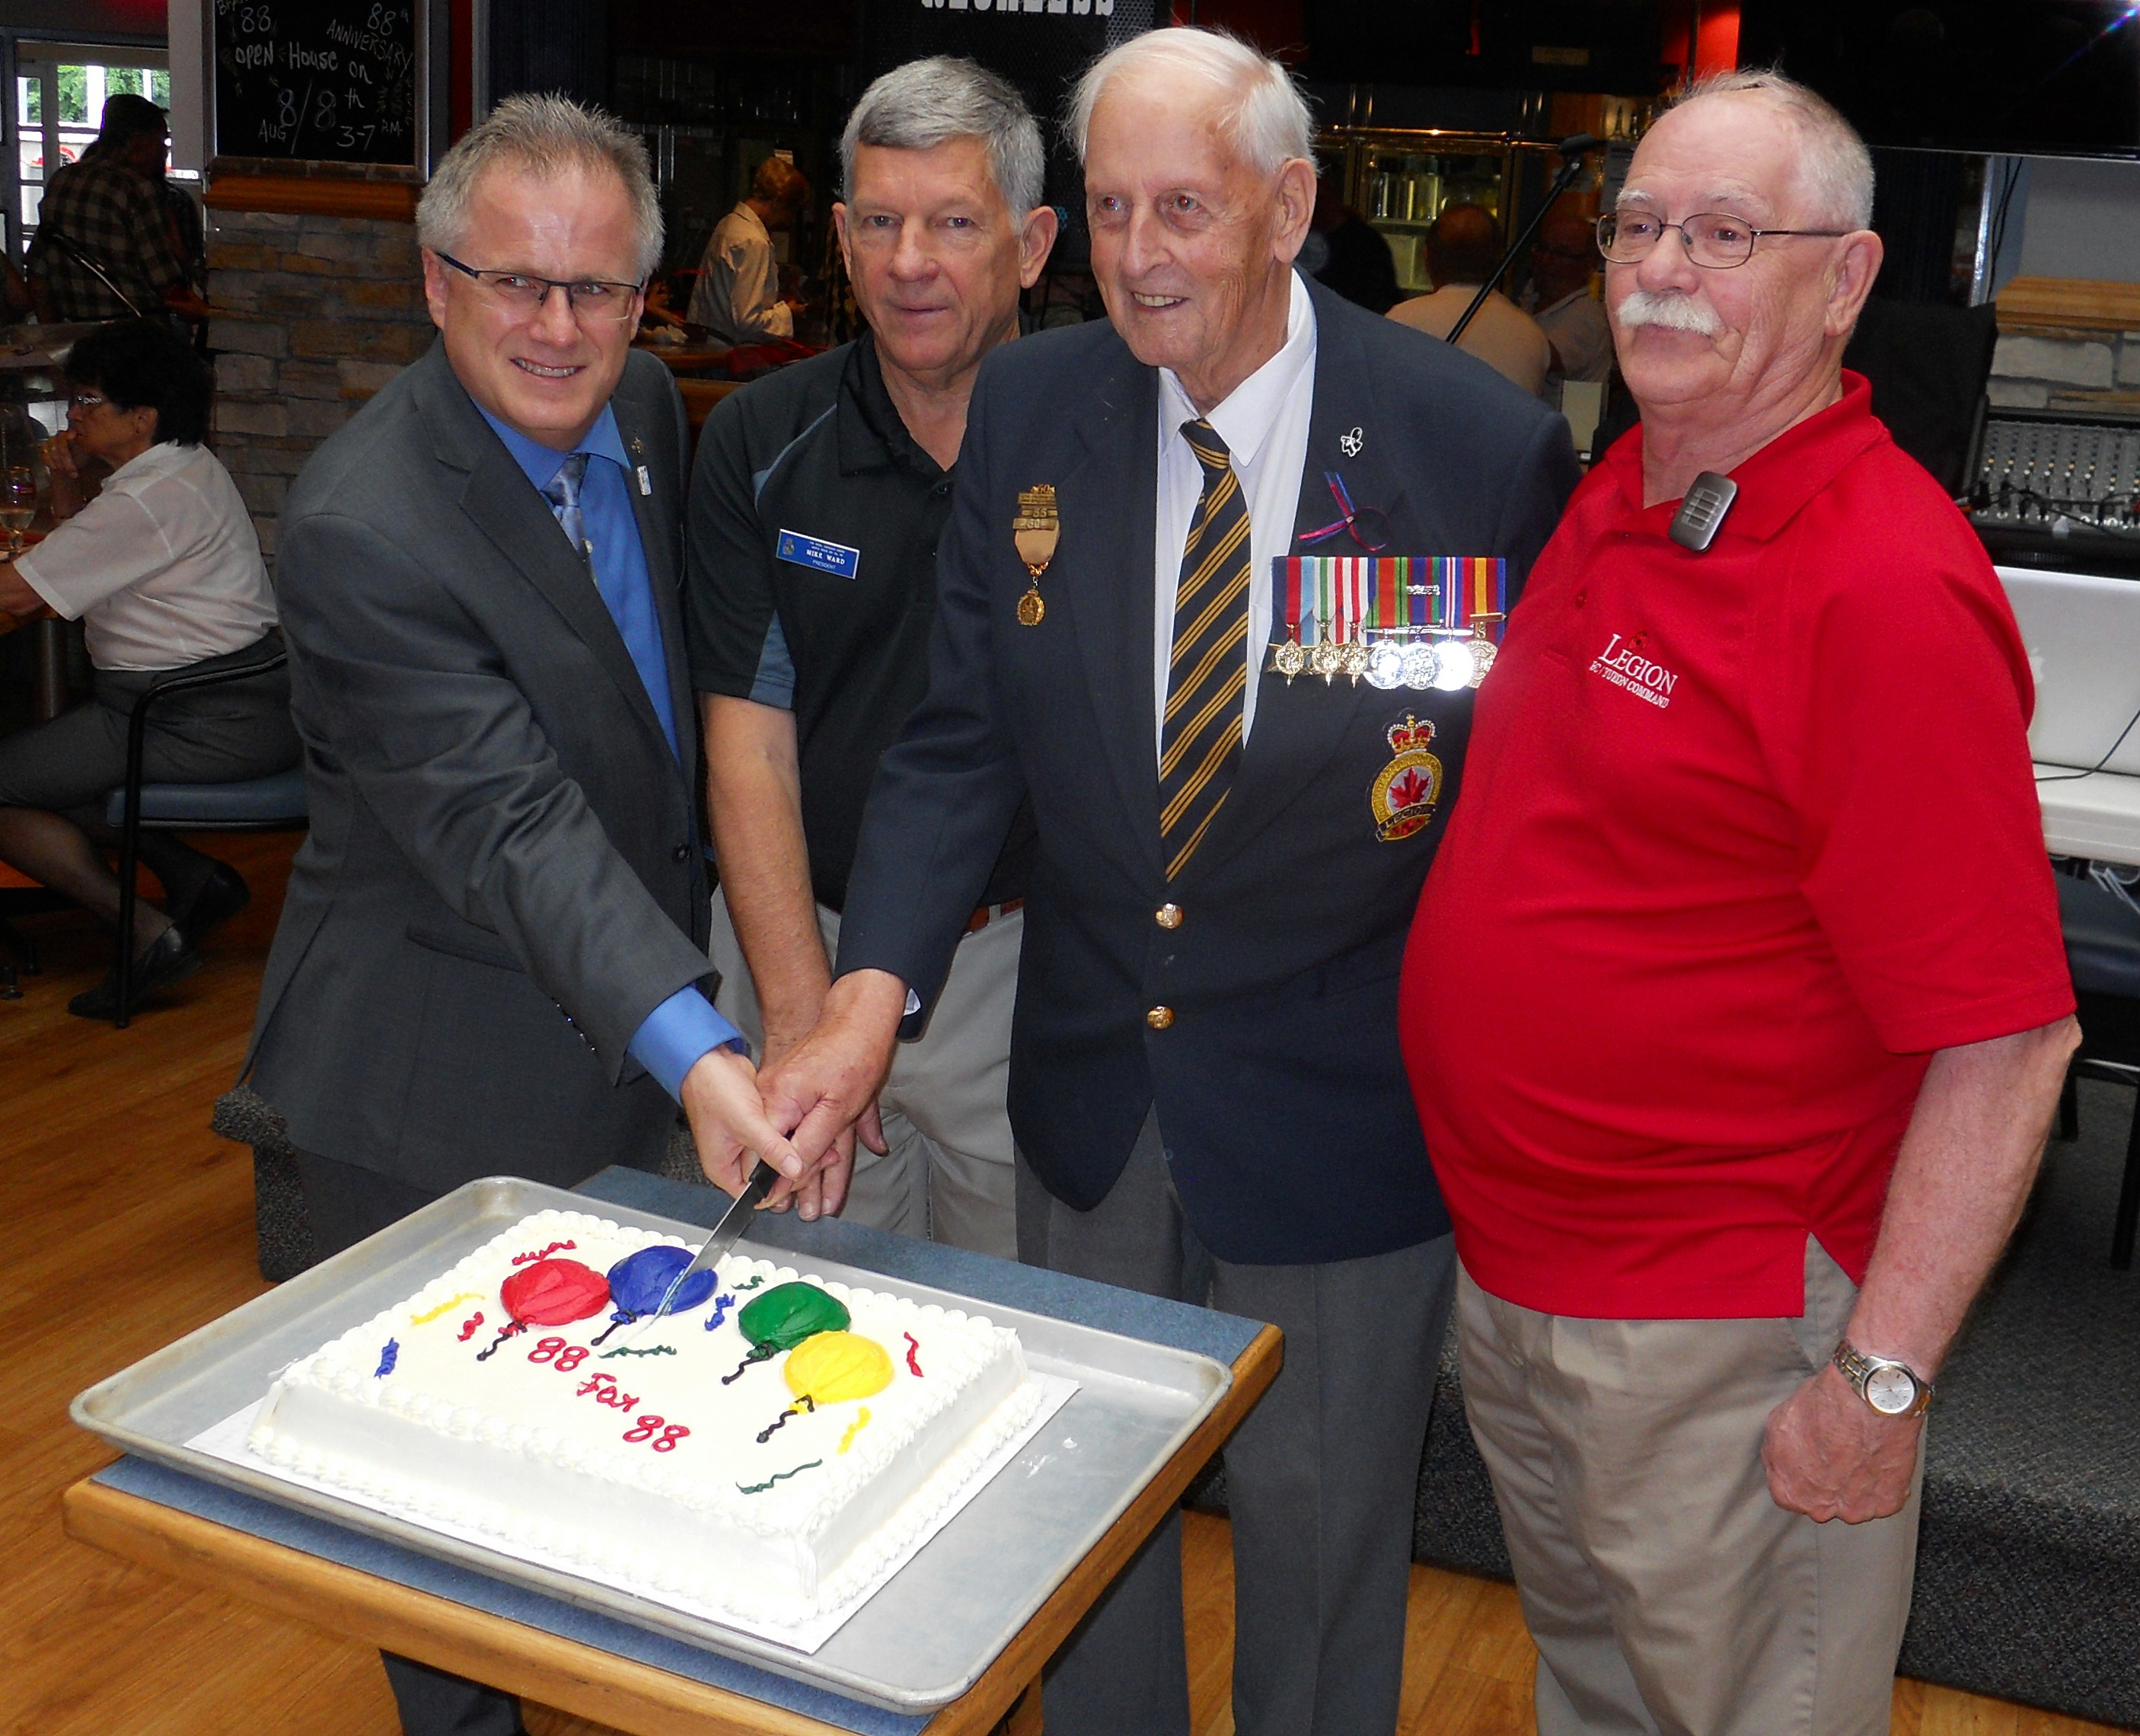 On August 8th, Branch 88 Maple Ridge celebrated 88 years of continuous service to our Veterans and the community. Cutting the anniversary cake at our well-attended Open House is (left to right) Marc Dalton MLA, Branch President Mike Ward, WWII Veteran Bill Mitchell and Legion New Westminster &Zone Commander Peter Dunford.